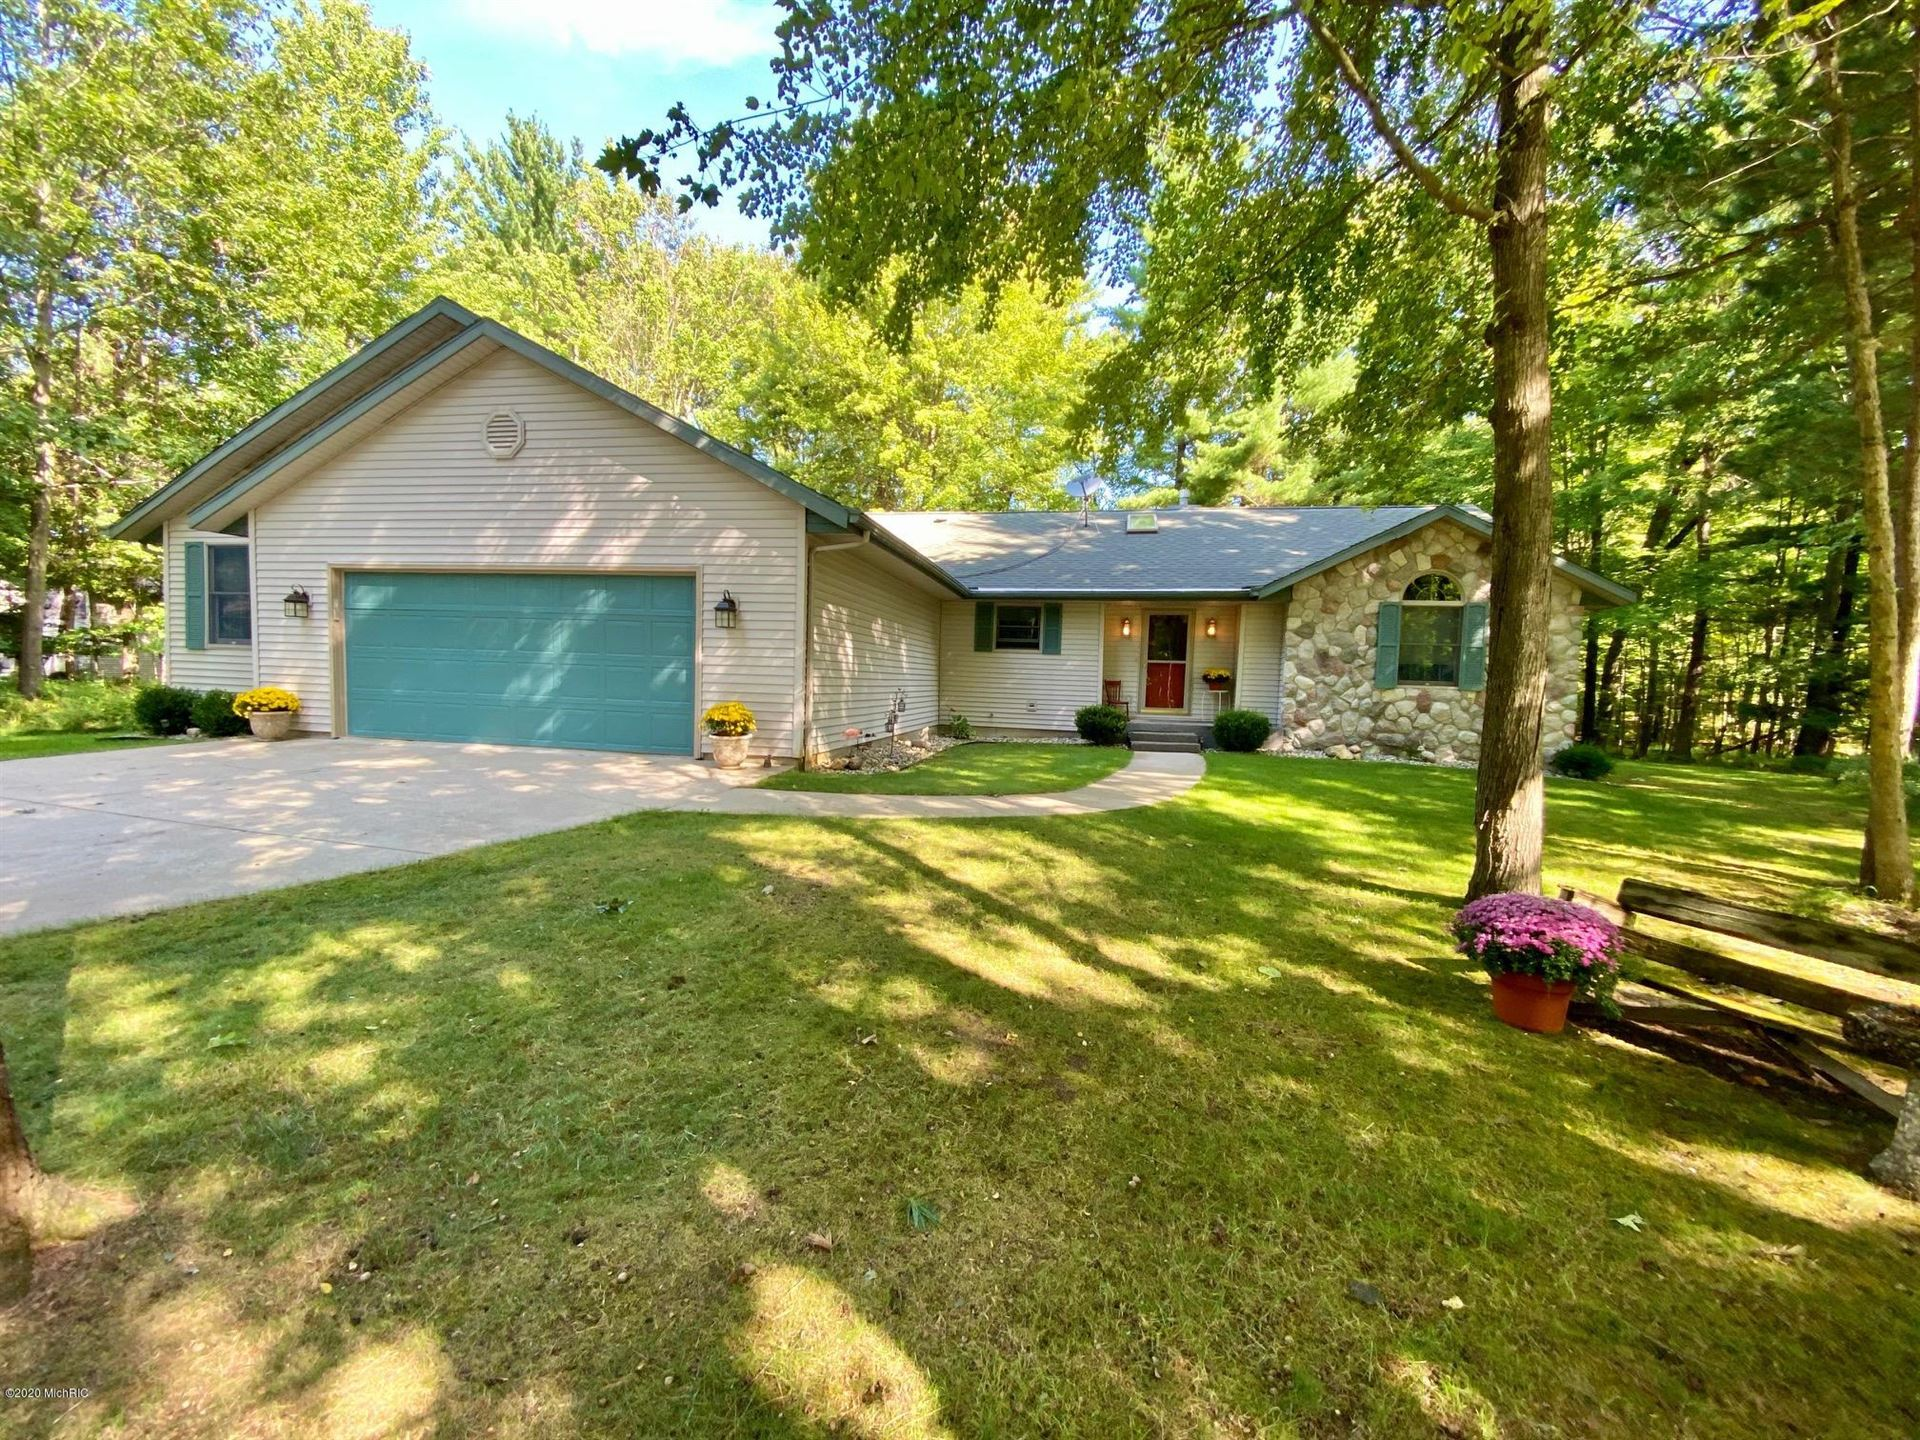 6844 Beechnut Court, Canadian Lakes, MI 49346 - MLS#: 20038078